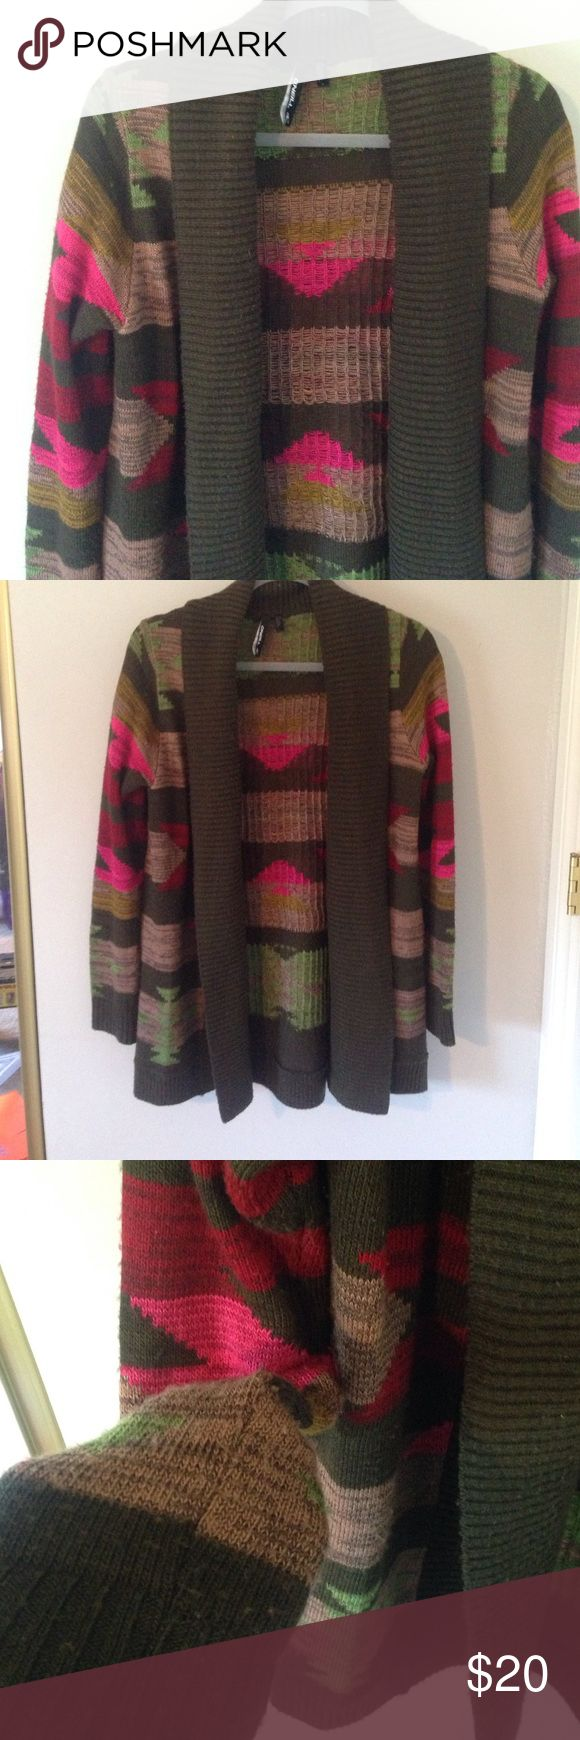 O'neil Long southwestern sweater Southwestern flair worn but lots of life left in this adorable sweater, perfect for fall. Some piling on inner sleeve and front typical sweater spot for friction. Dark olive green base with beige, hot pink, light green, and deep red design. O'Neill Sweaters Cardigans